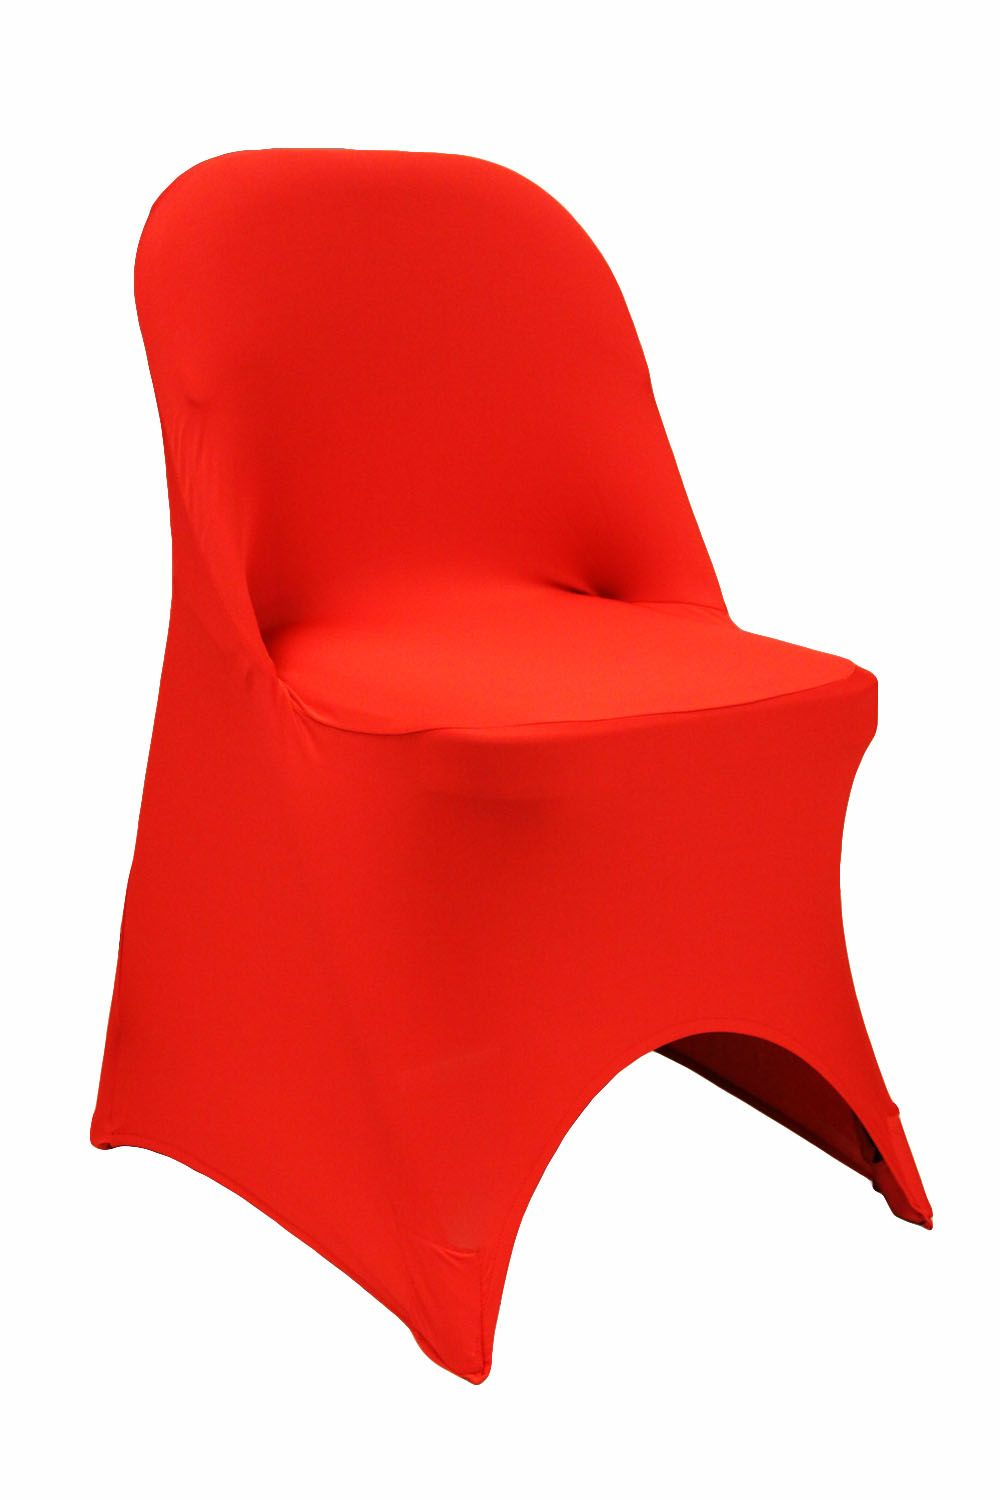 Astonishing Folding Spandex Chair Cover Red Chairs Chair Covers And Gmtry Best Dining Table And Chair Ideas Images Gmtryco